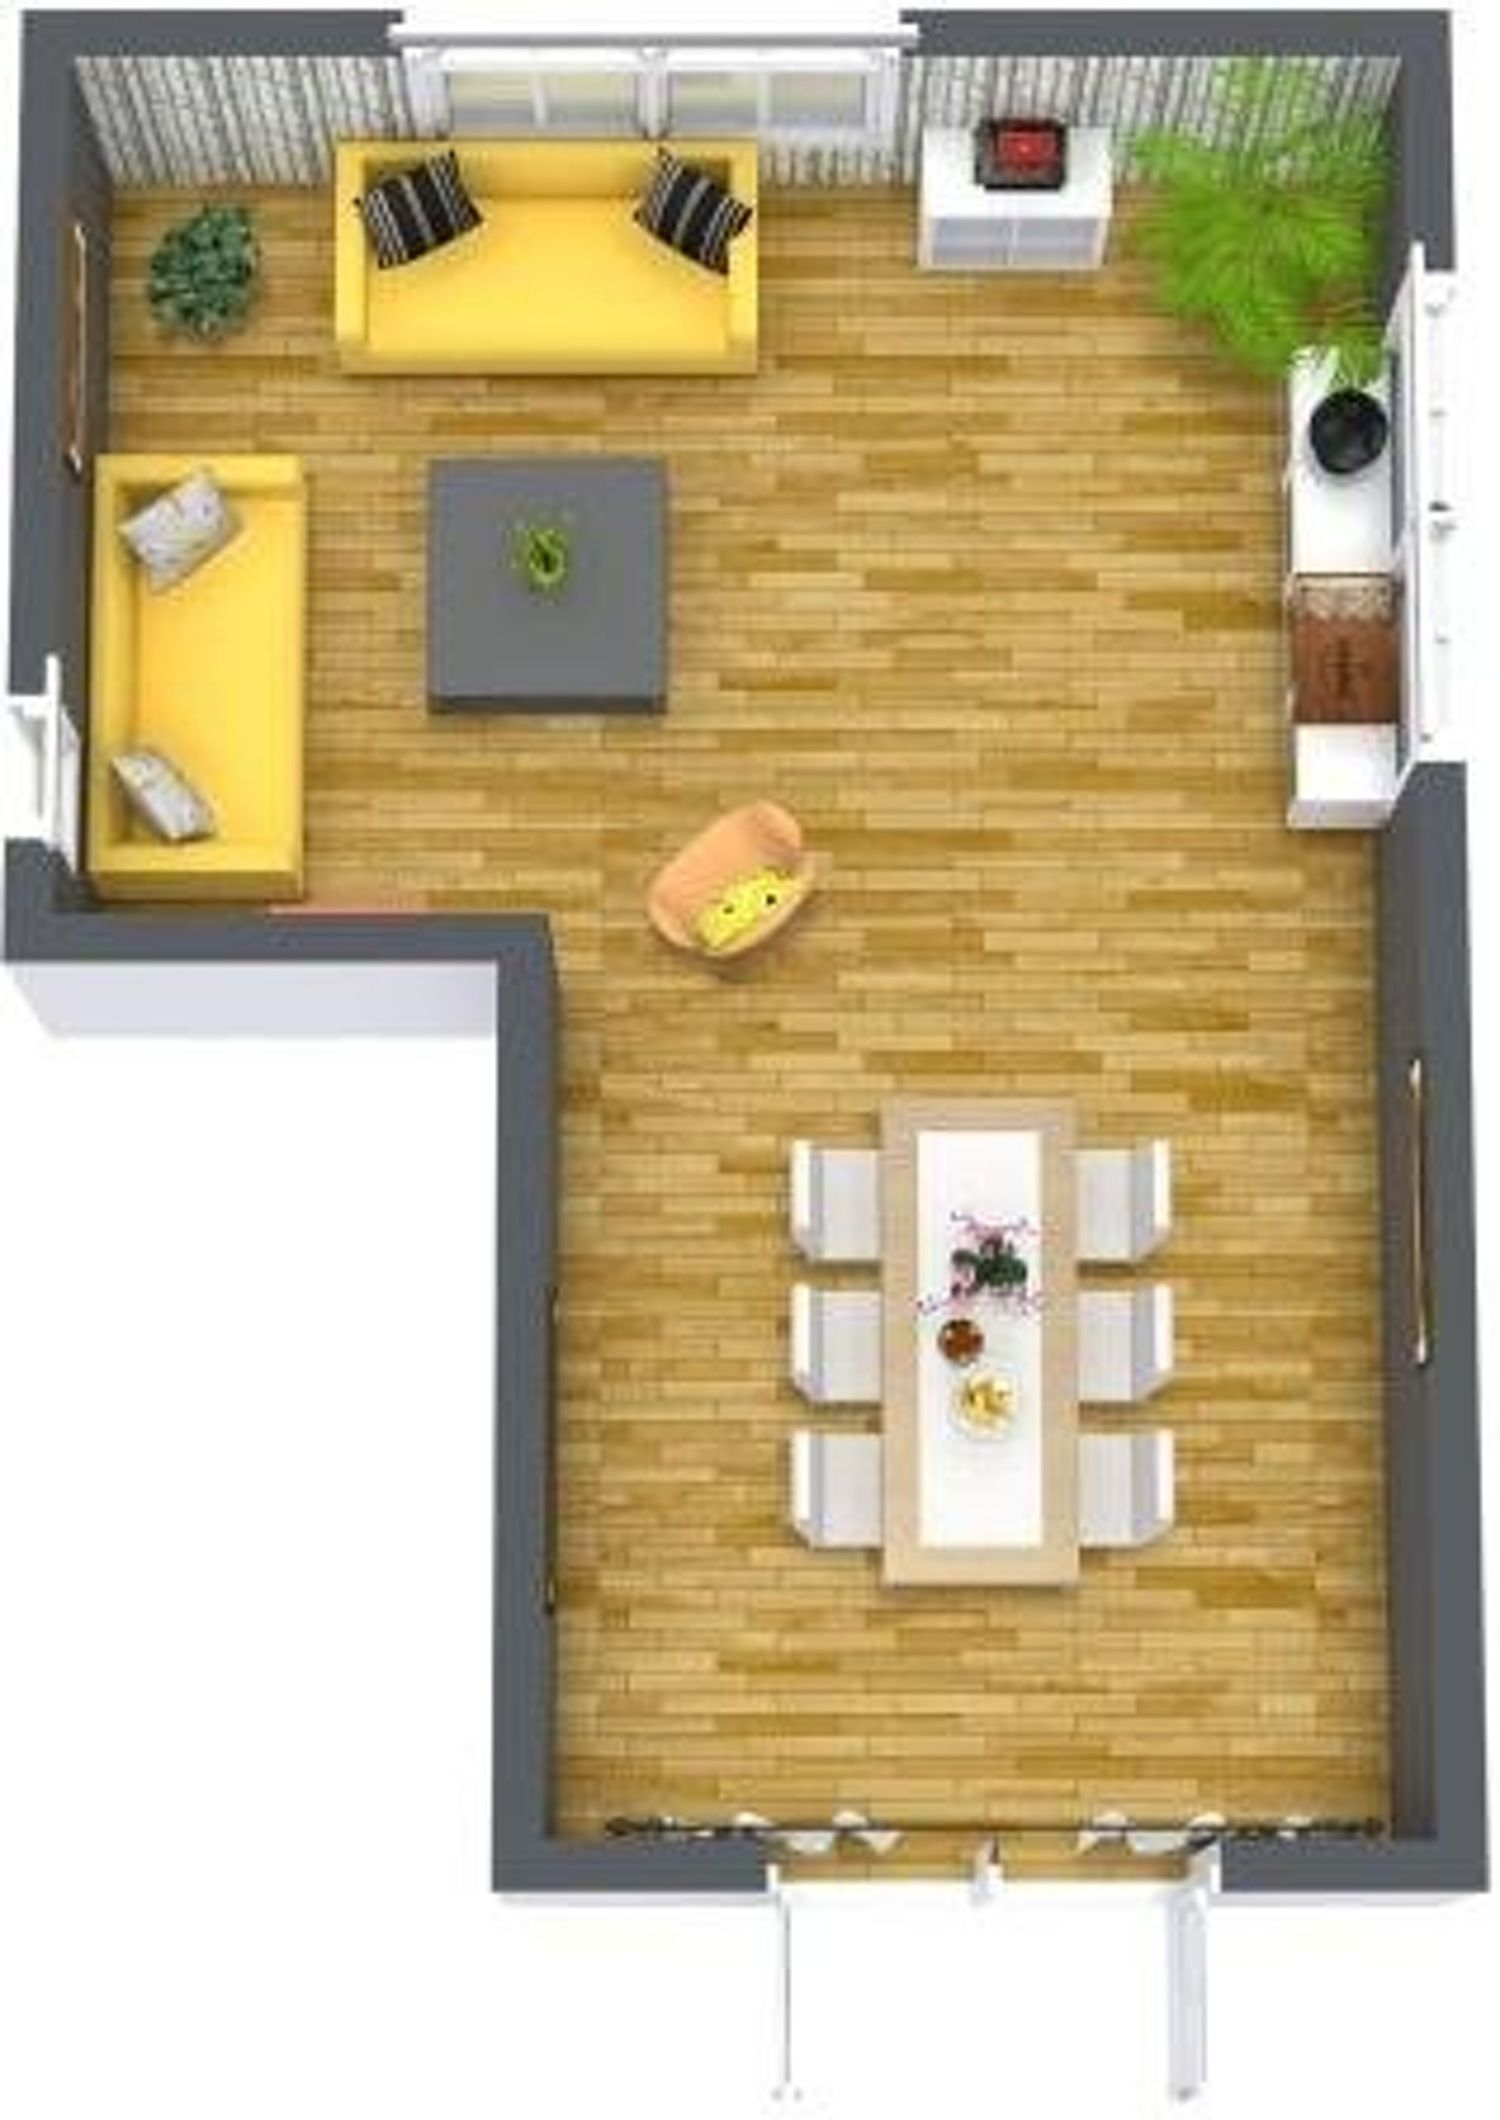 How to Optimize Typical Rental Layouts: The L-Shaped ...